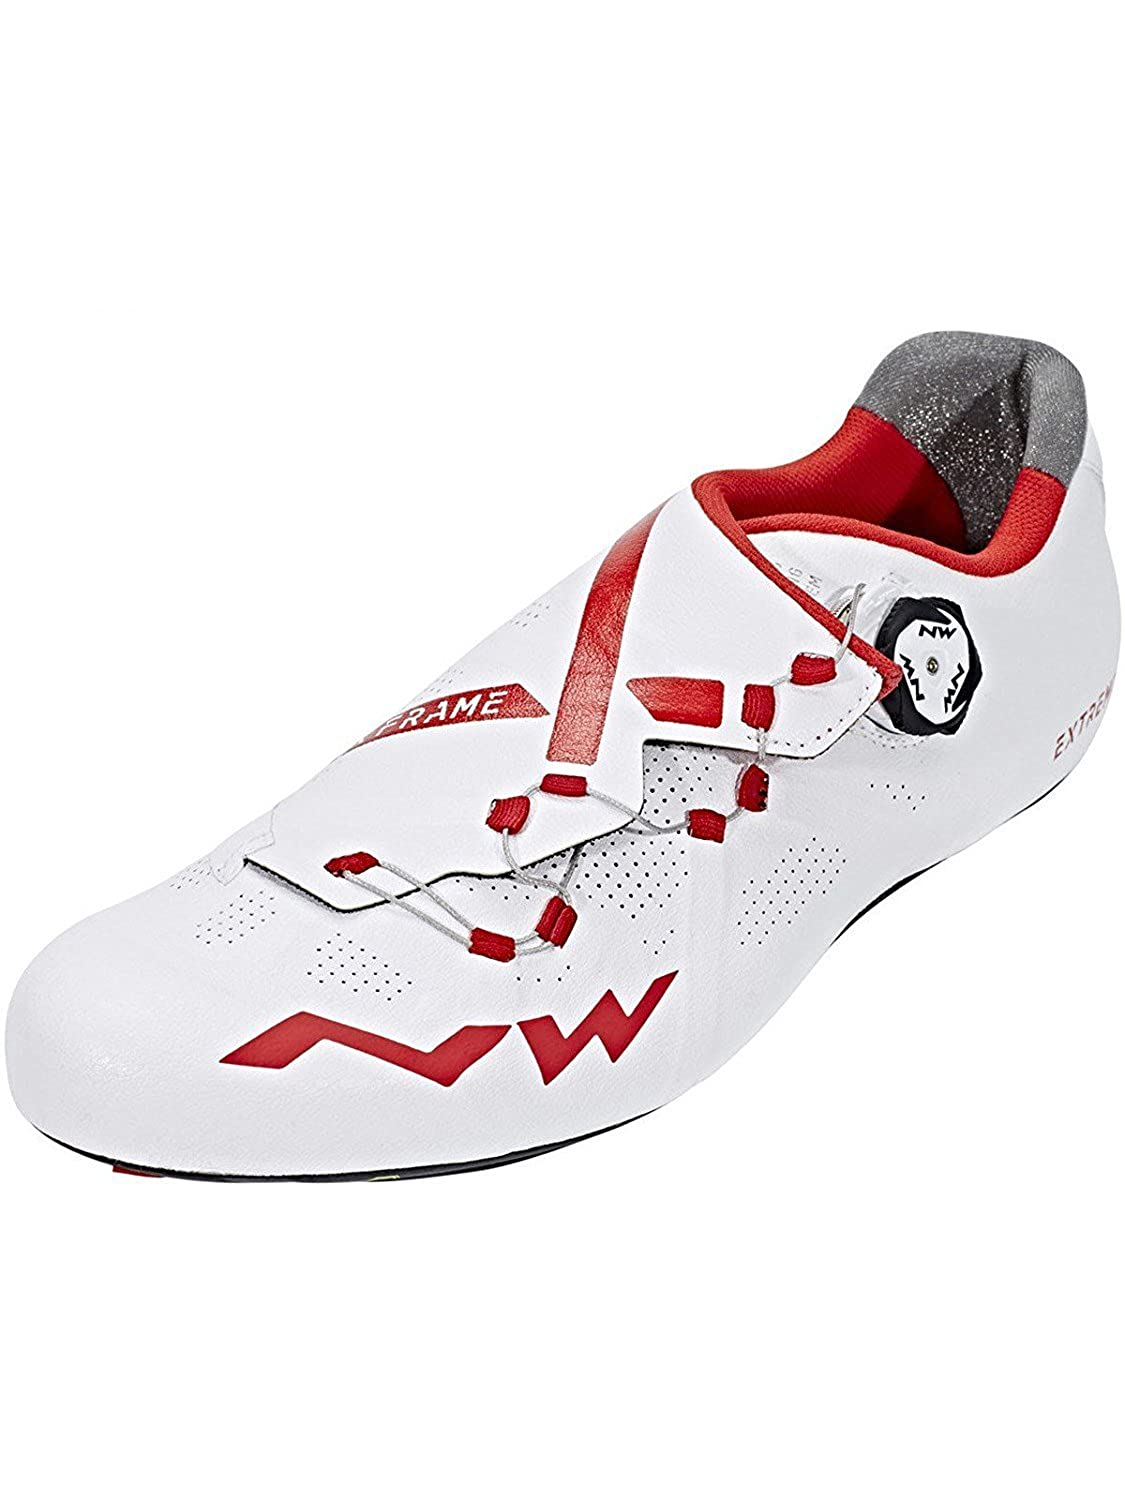 NORTH WAVE(ノースウェーブ)EXTREME RR(WHITE/RED)39.518(25.7cm)   B076R96DPM